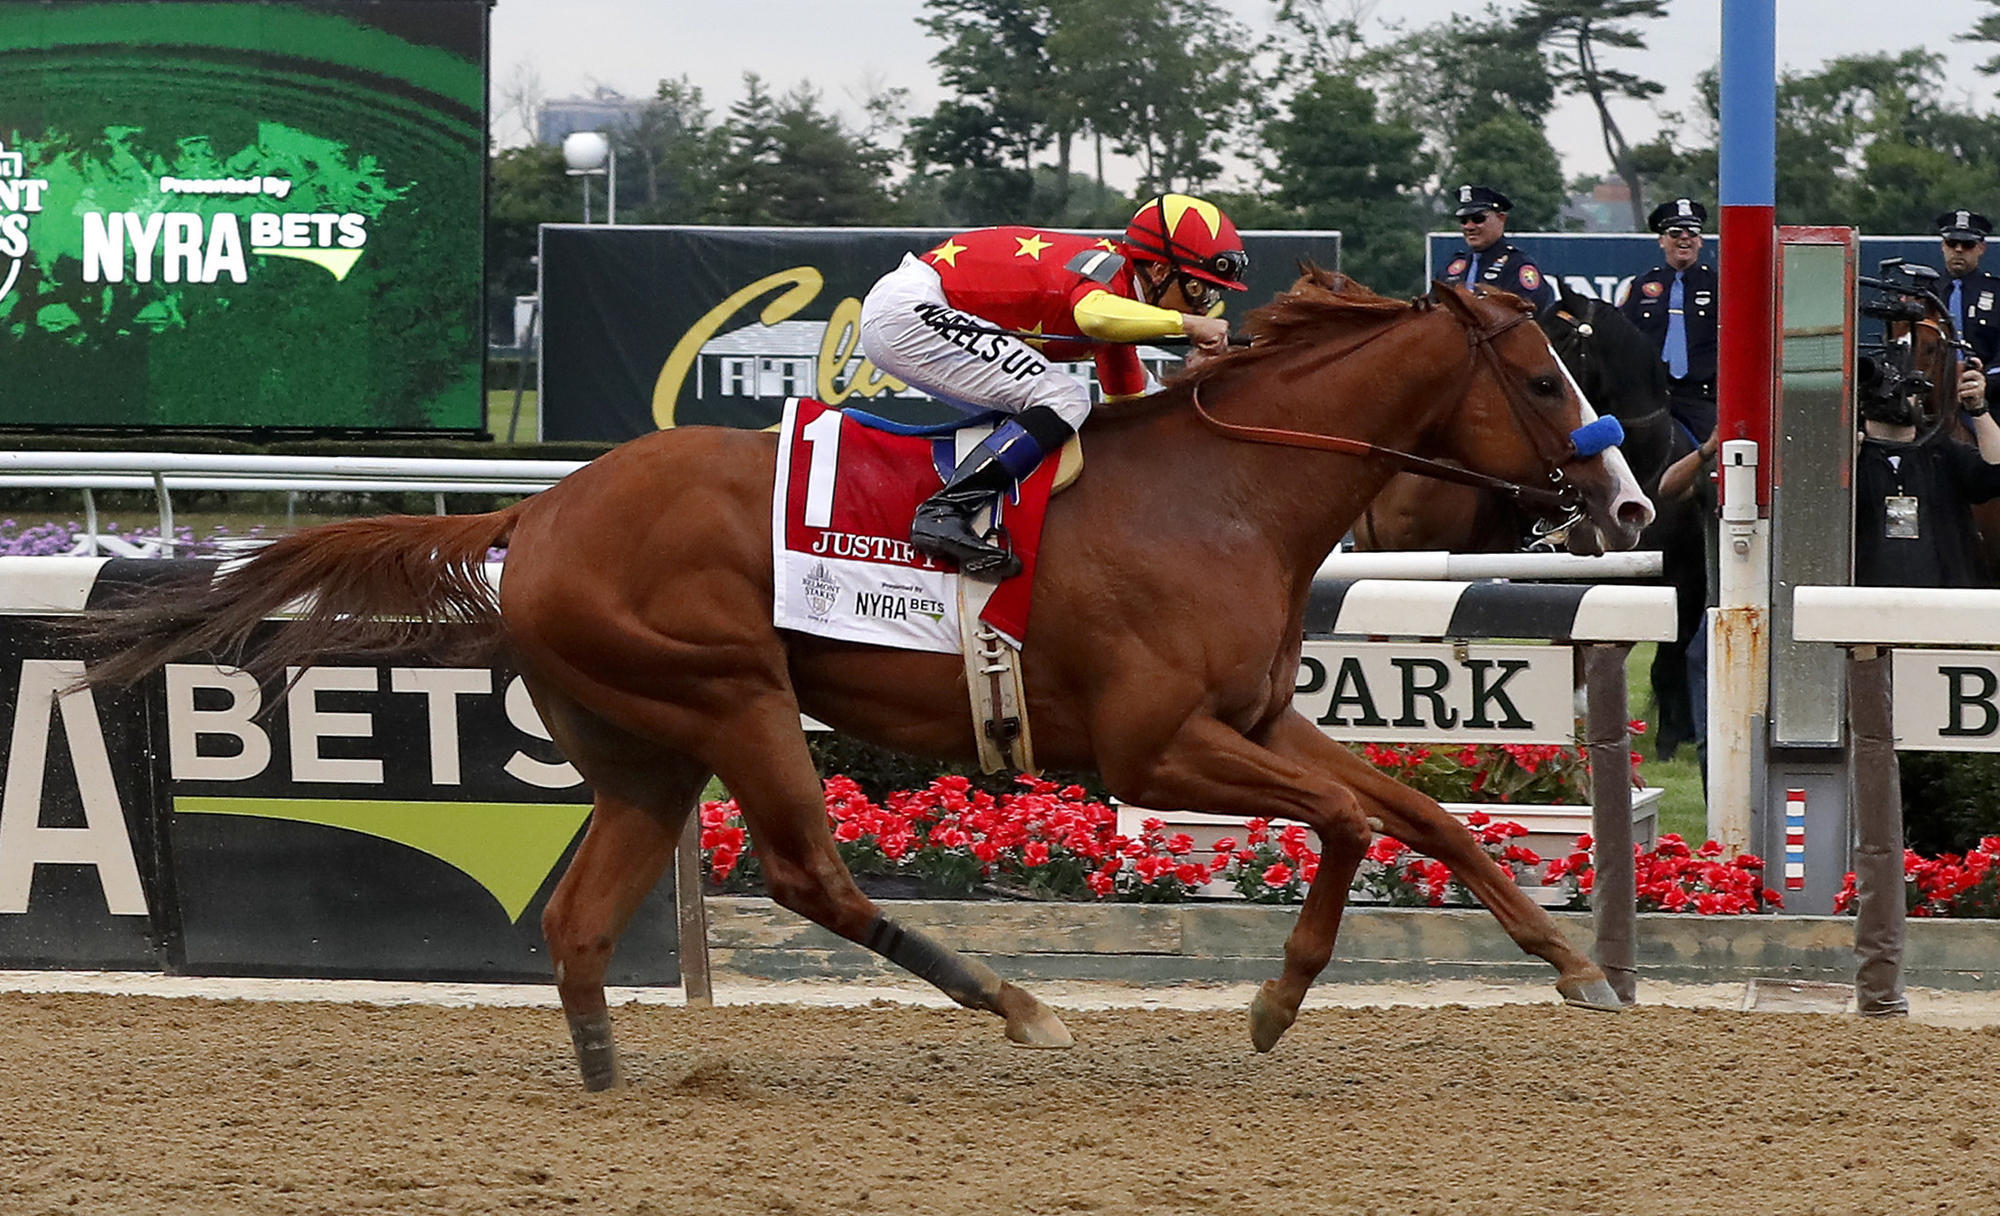 Justify Becomes 13th Triple Crown Winner With Thrilling Belmont Stakes Victory